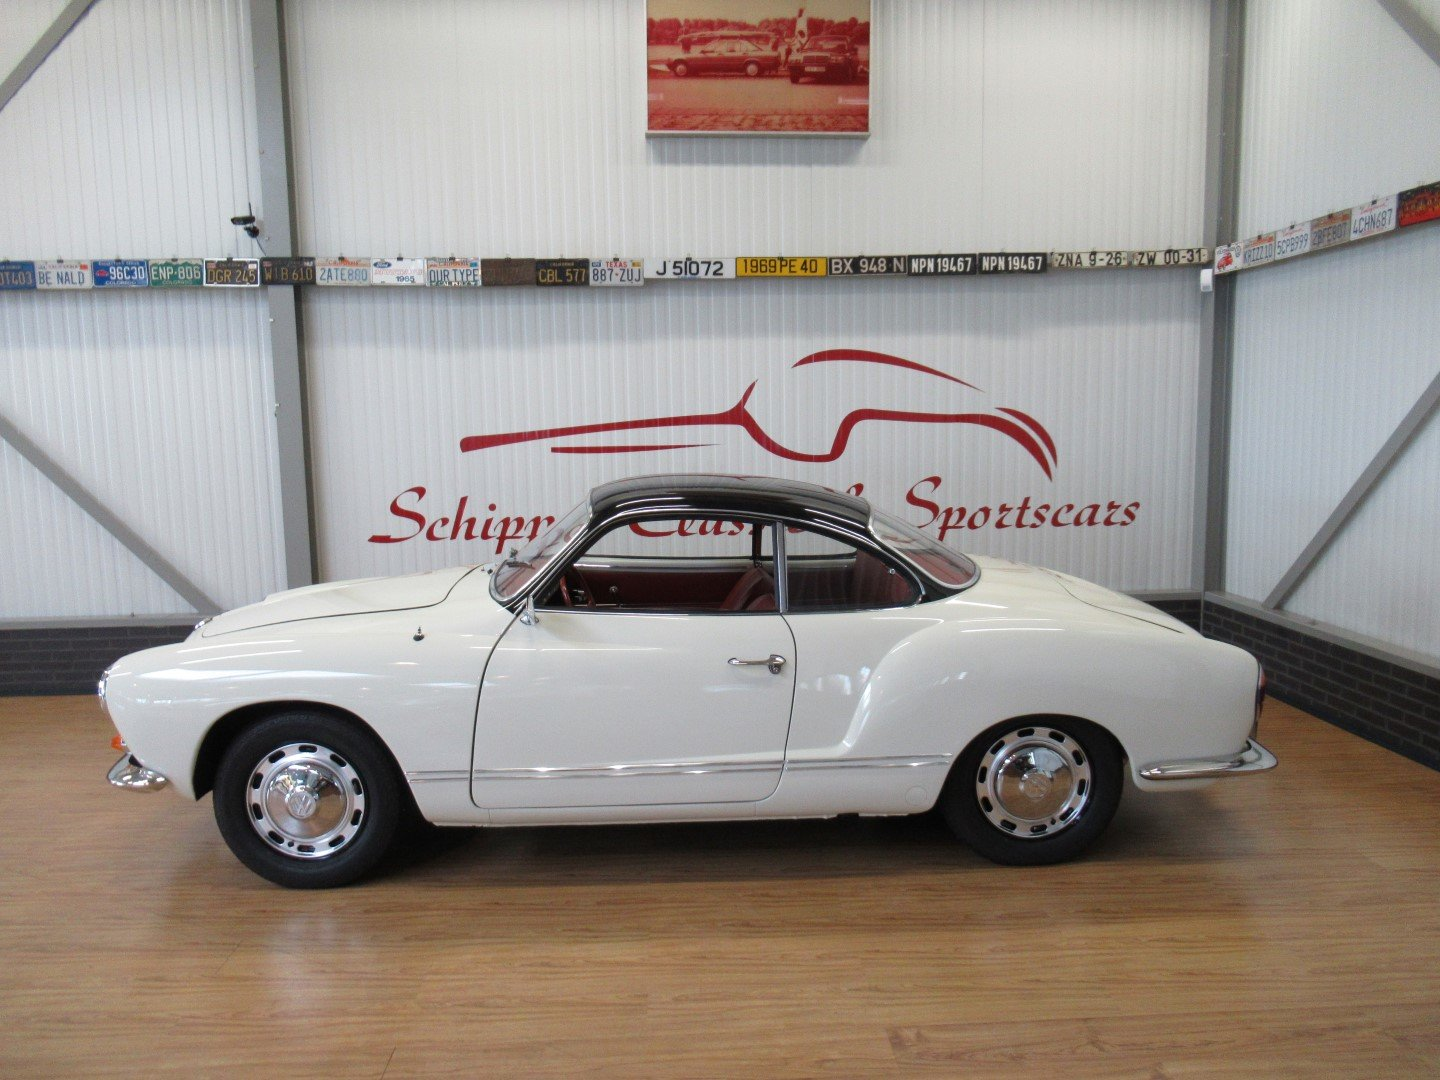 1966 Volkswagen Karmann Ghia type14 Pigalle Special edition!! For Sale (picture 2 of 6)